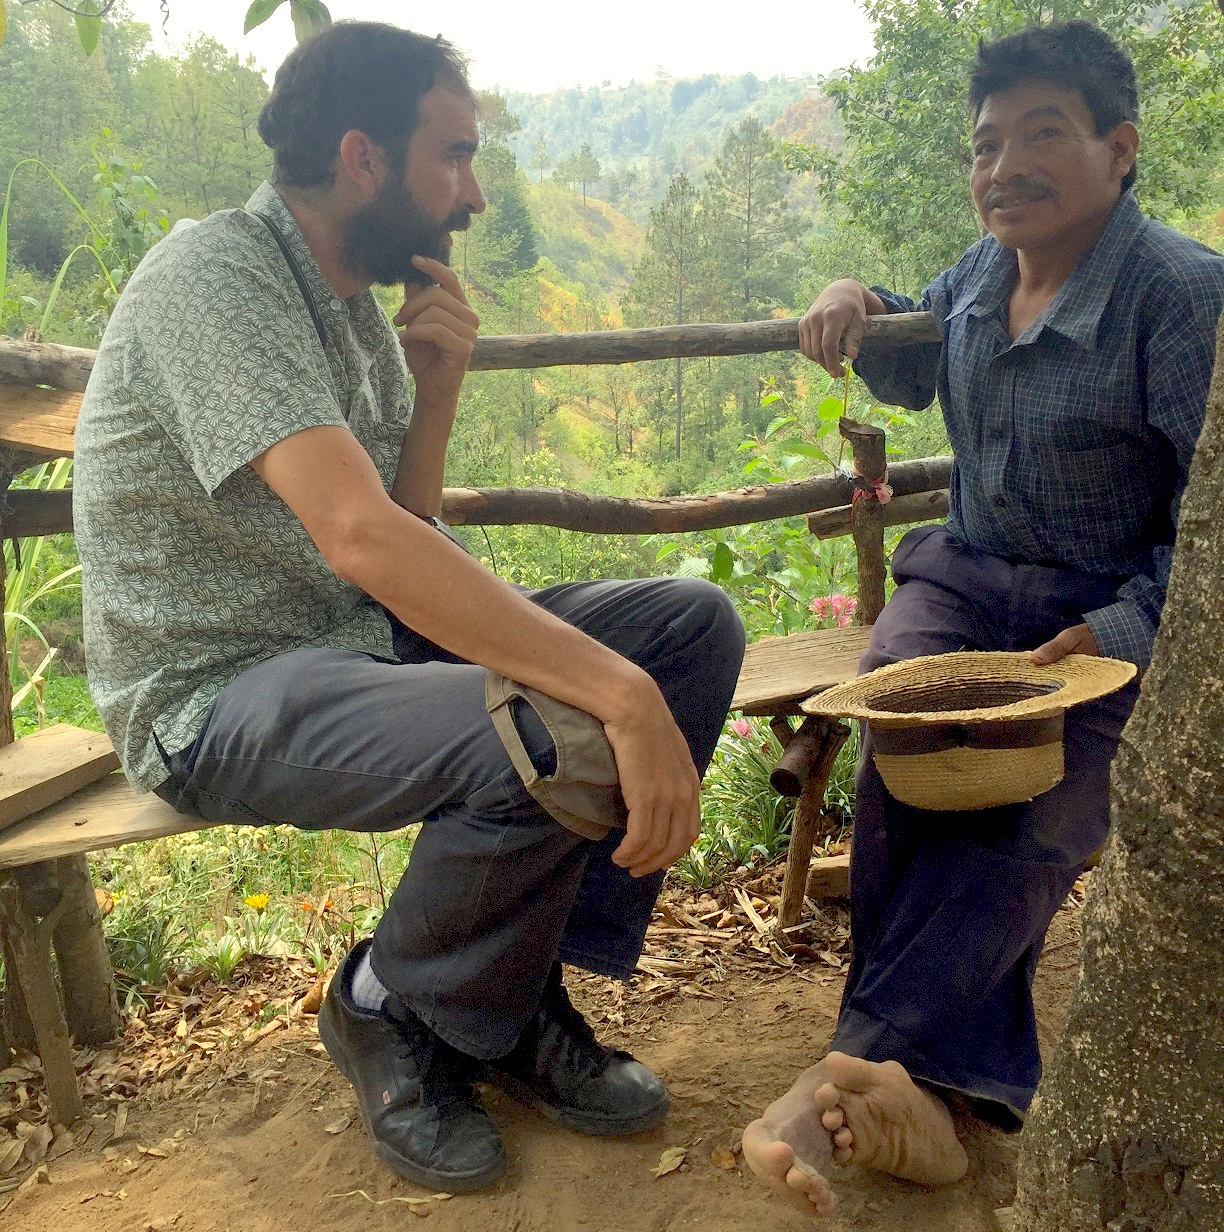 Senior scientist Santiago Lopez-Ridaura (left) asks a farmer in Guatemala about his priorities — produce food, generate income, maintain soil health and feed his livestock — and the reasons behind his agricultural practices. (Photo: Carlos Sum/Buena Milpa)